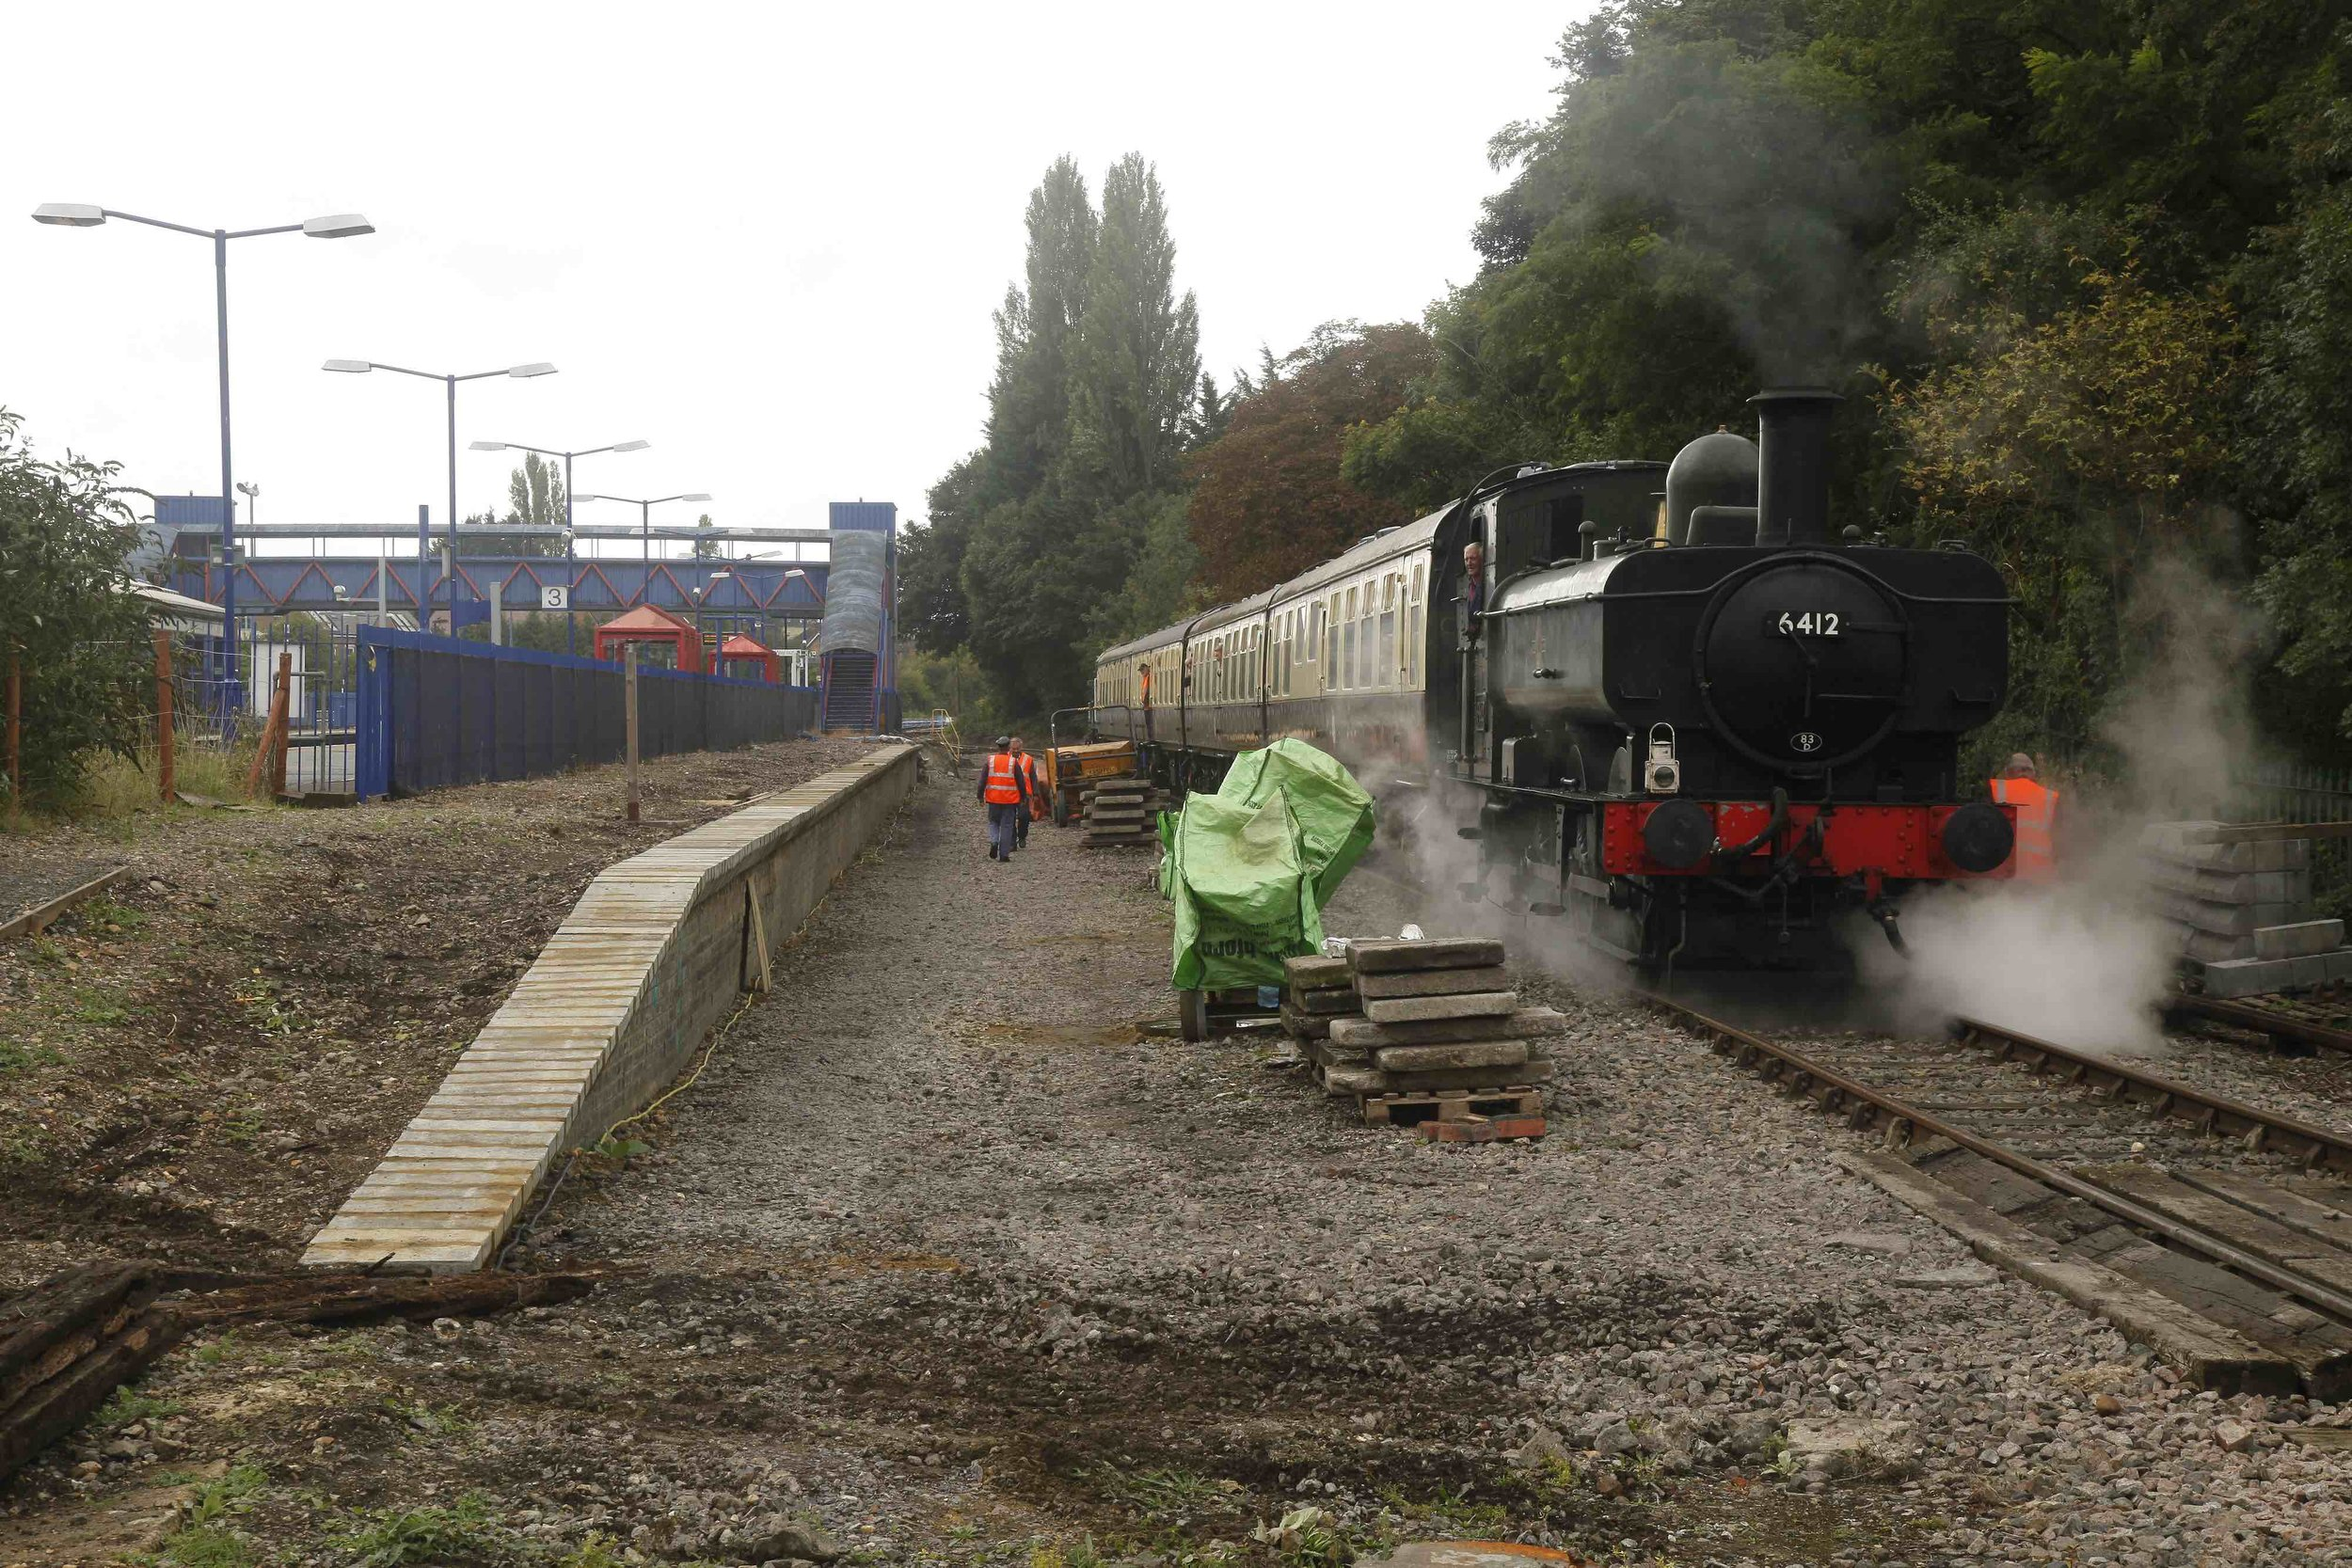 On September 17, visiting '64XX' 0‑6‑0PT No.6412 stands on the future run-round loop at Princes Risborough station, as the new Platform 4 takes shape. PHIL MARSH